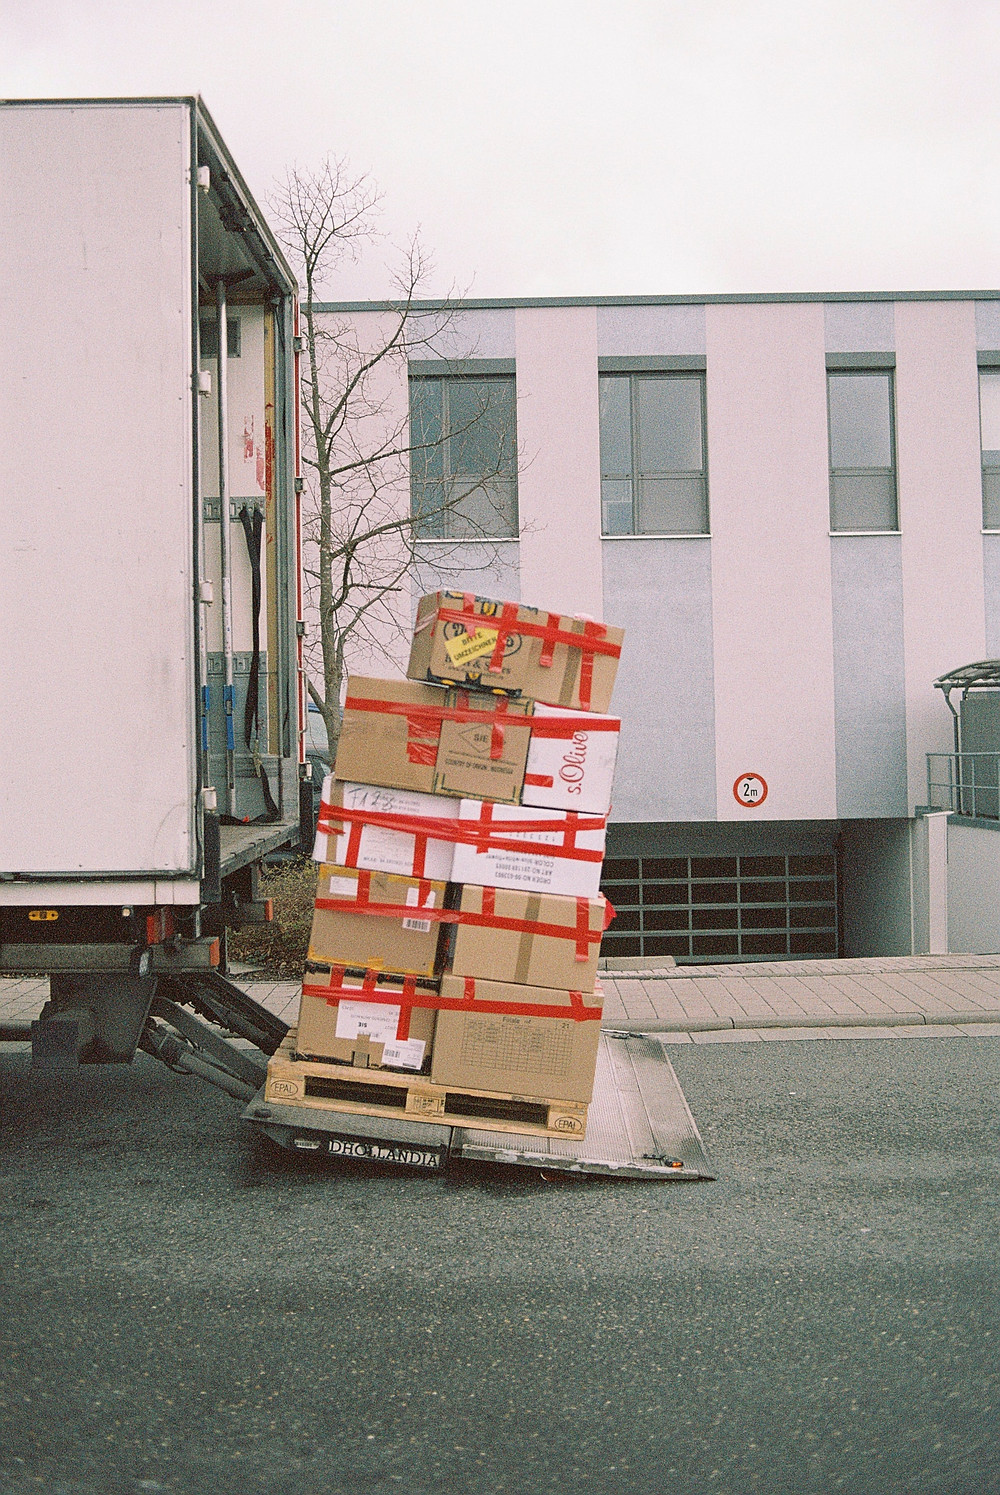 A crate of packages and boxes wrapped on the back of a lorry.